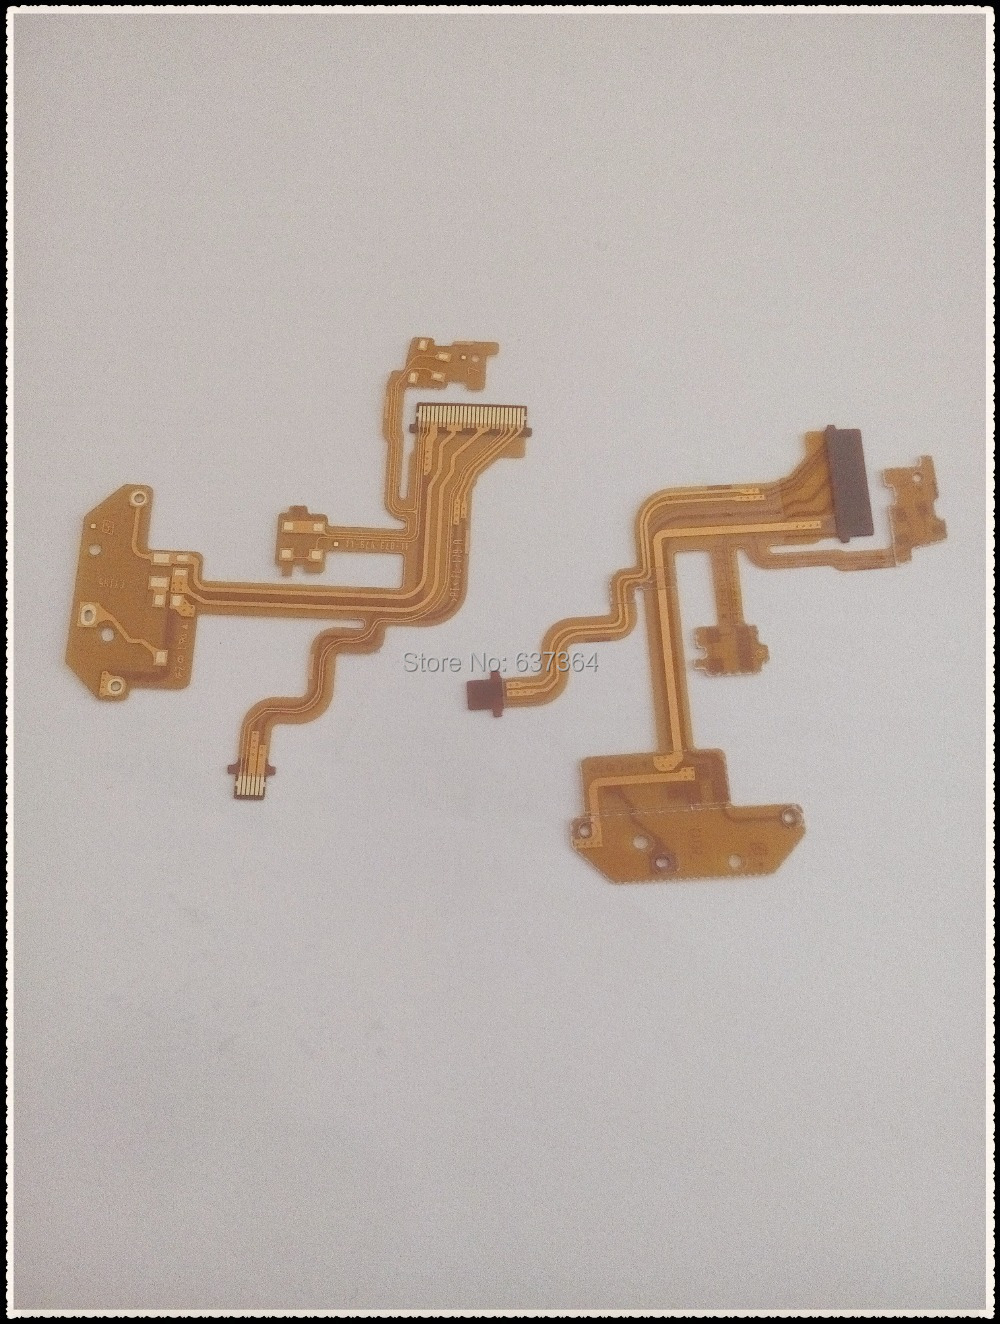 NEW Flash Unit Flex Cable For SONY DSC-H10 DSC-H3 H10 H3 Digital Camera Repair Part